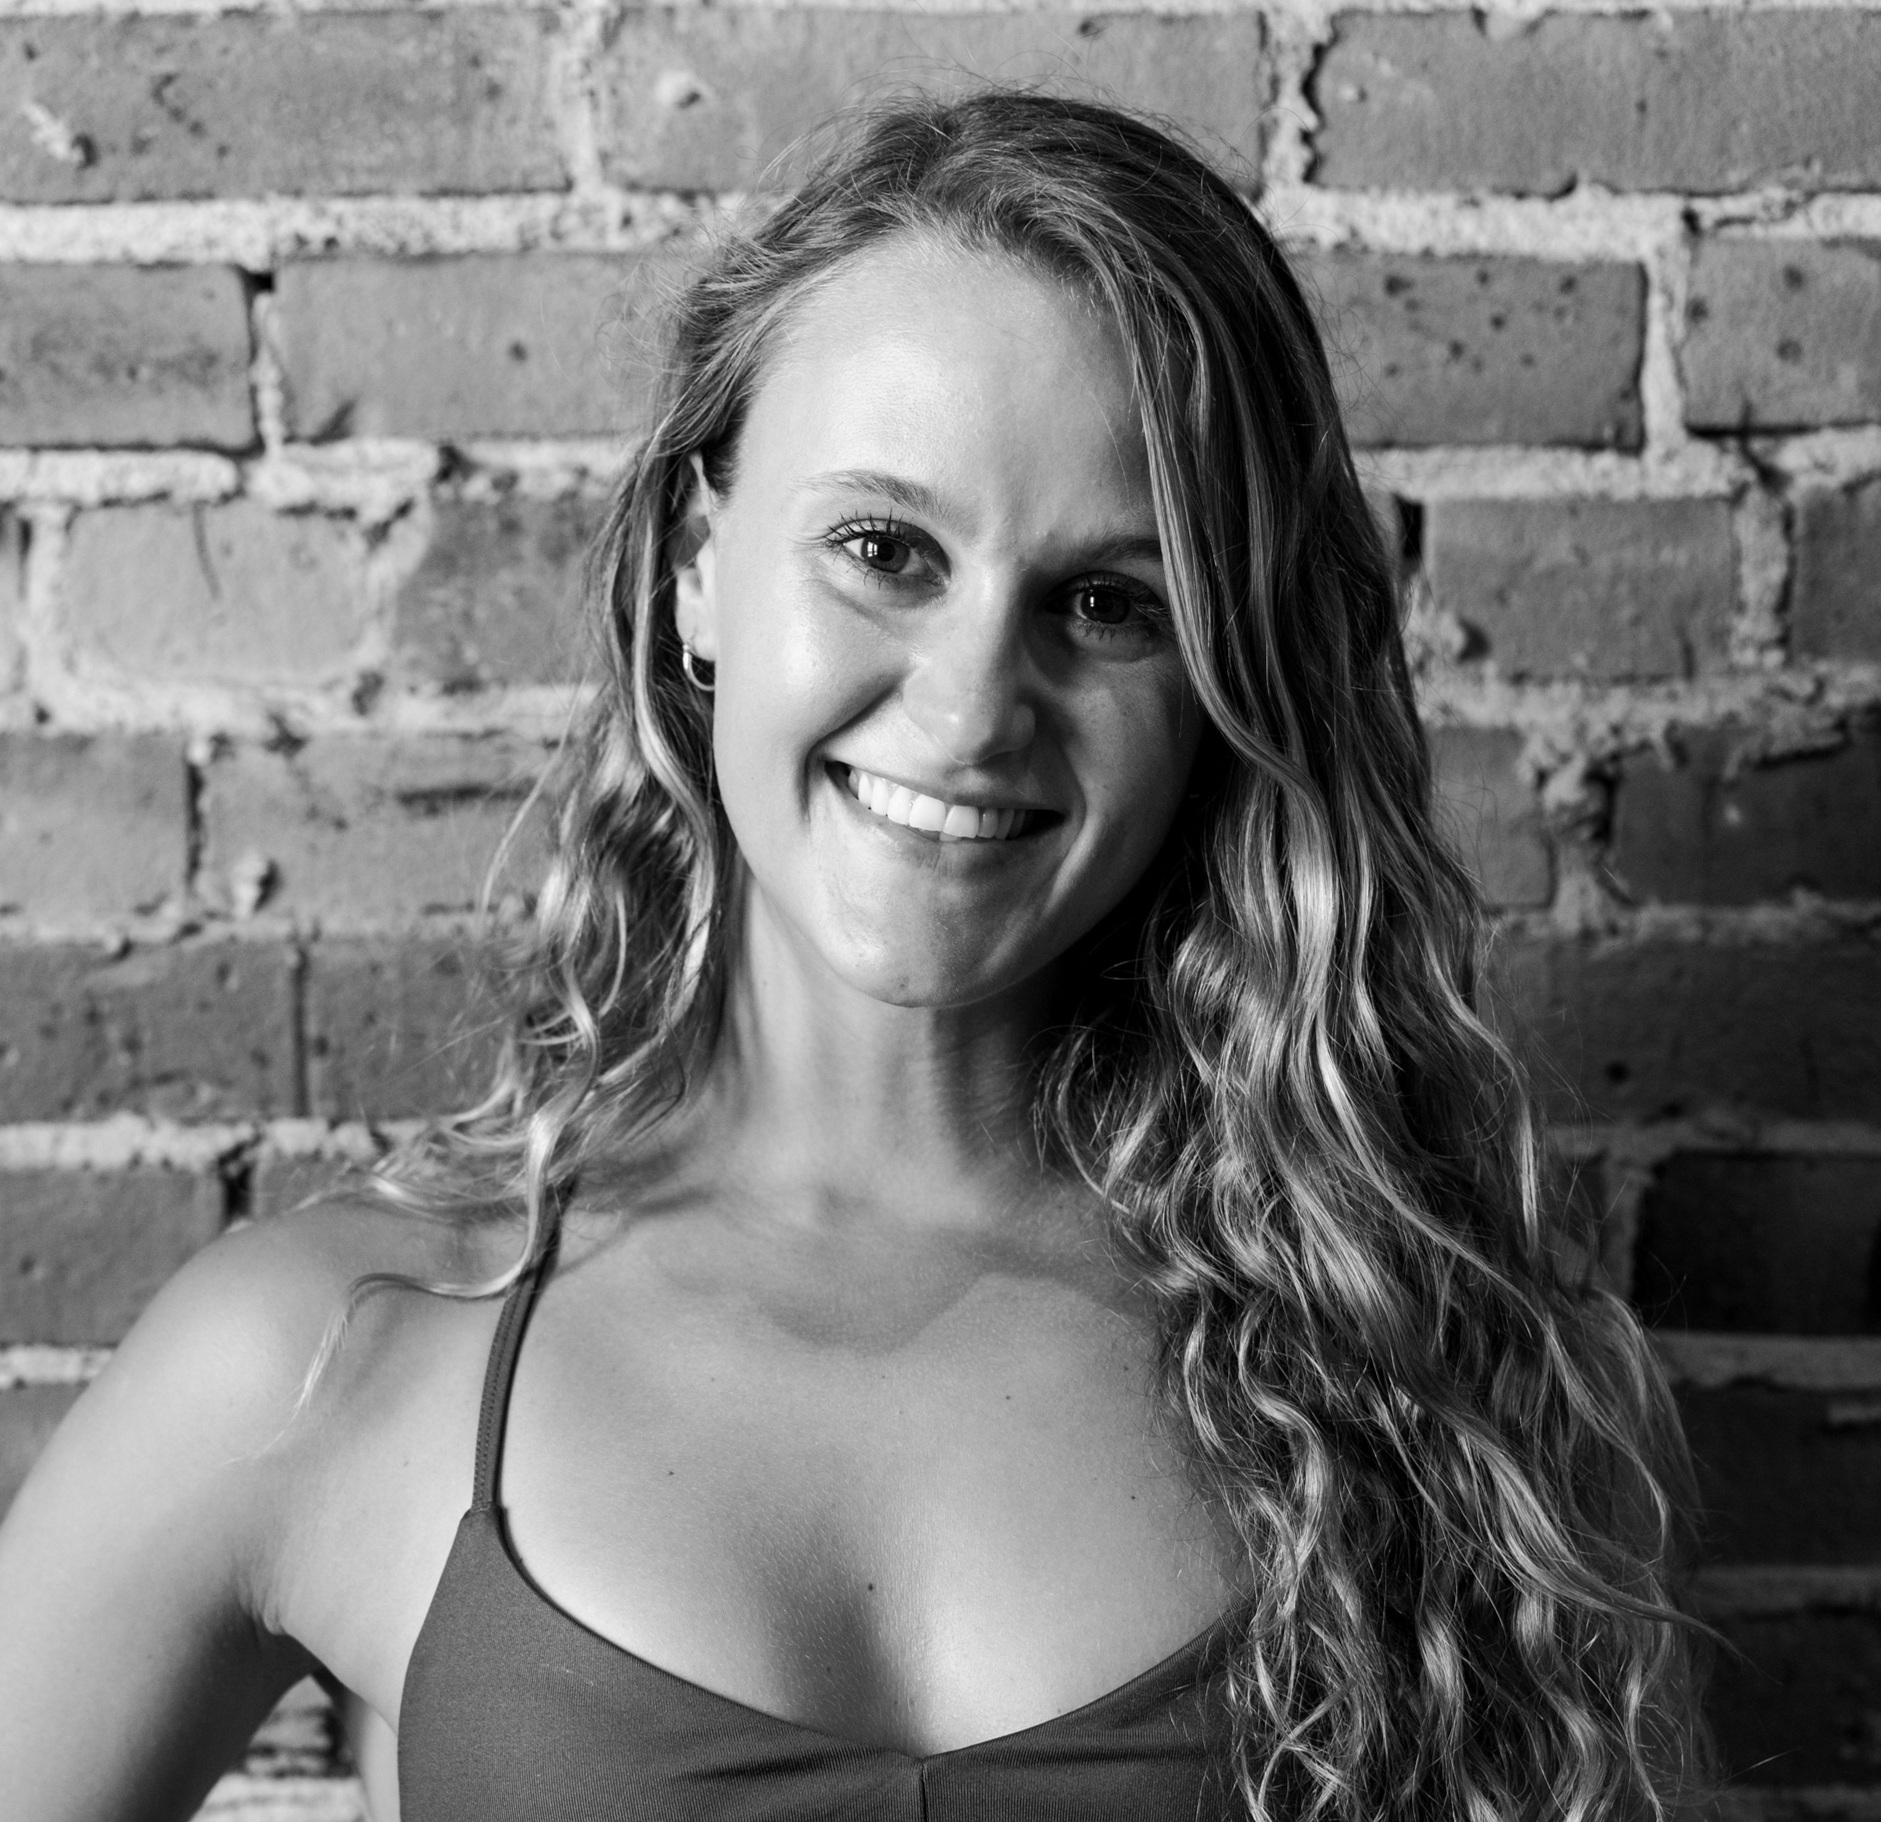 lauren bristow, inferno hot pilates, charleston yoga, power yoga, core power yoga, the works, ashtanga